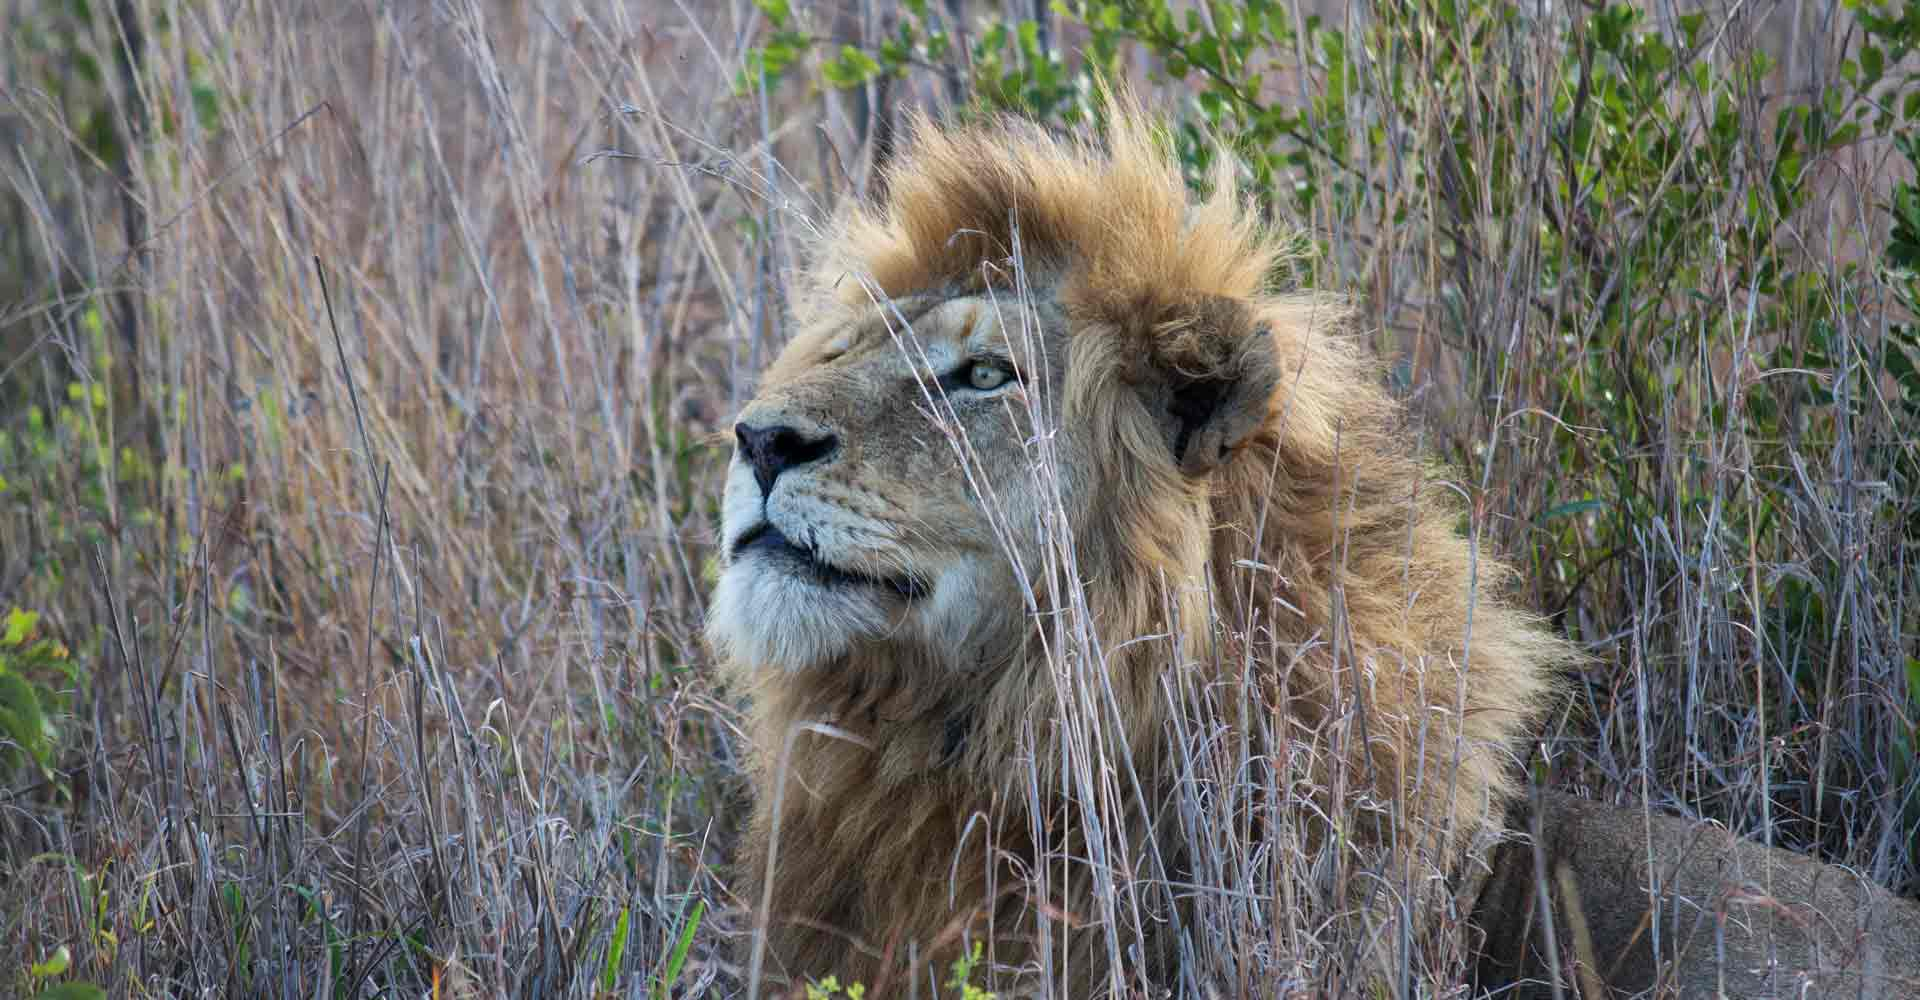 Lion sighting by Mabeco tours a travel agency from Maputo